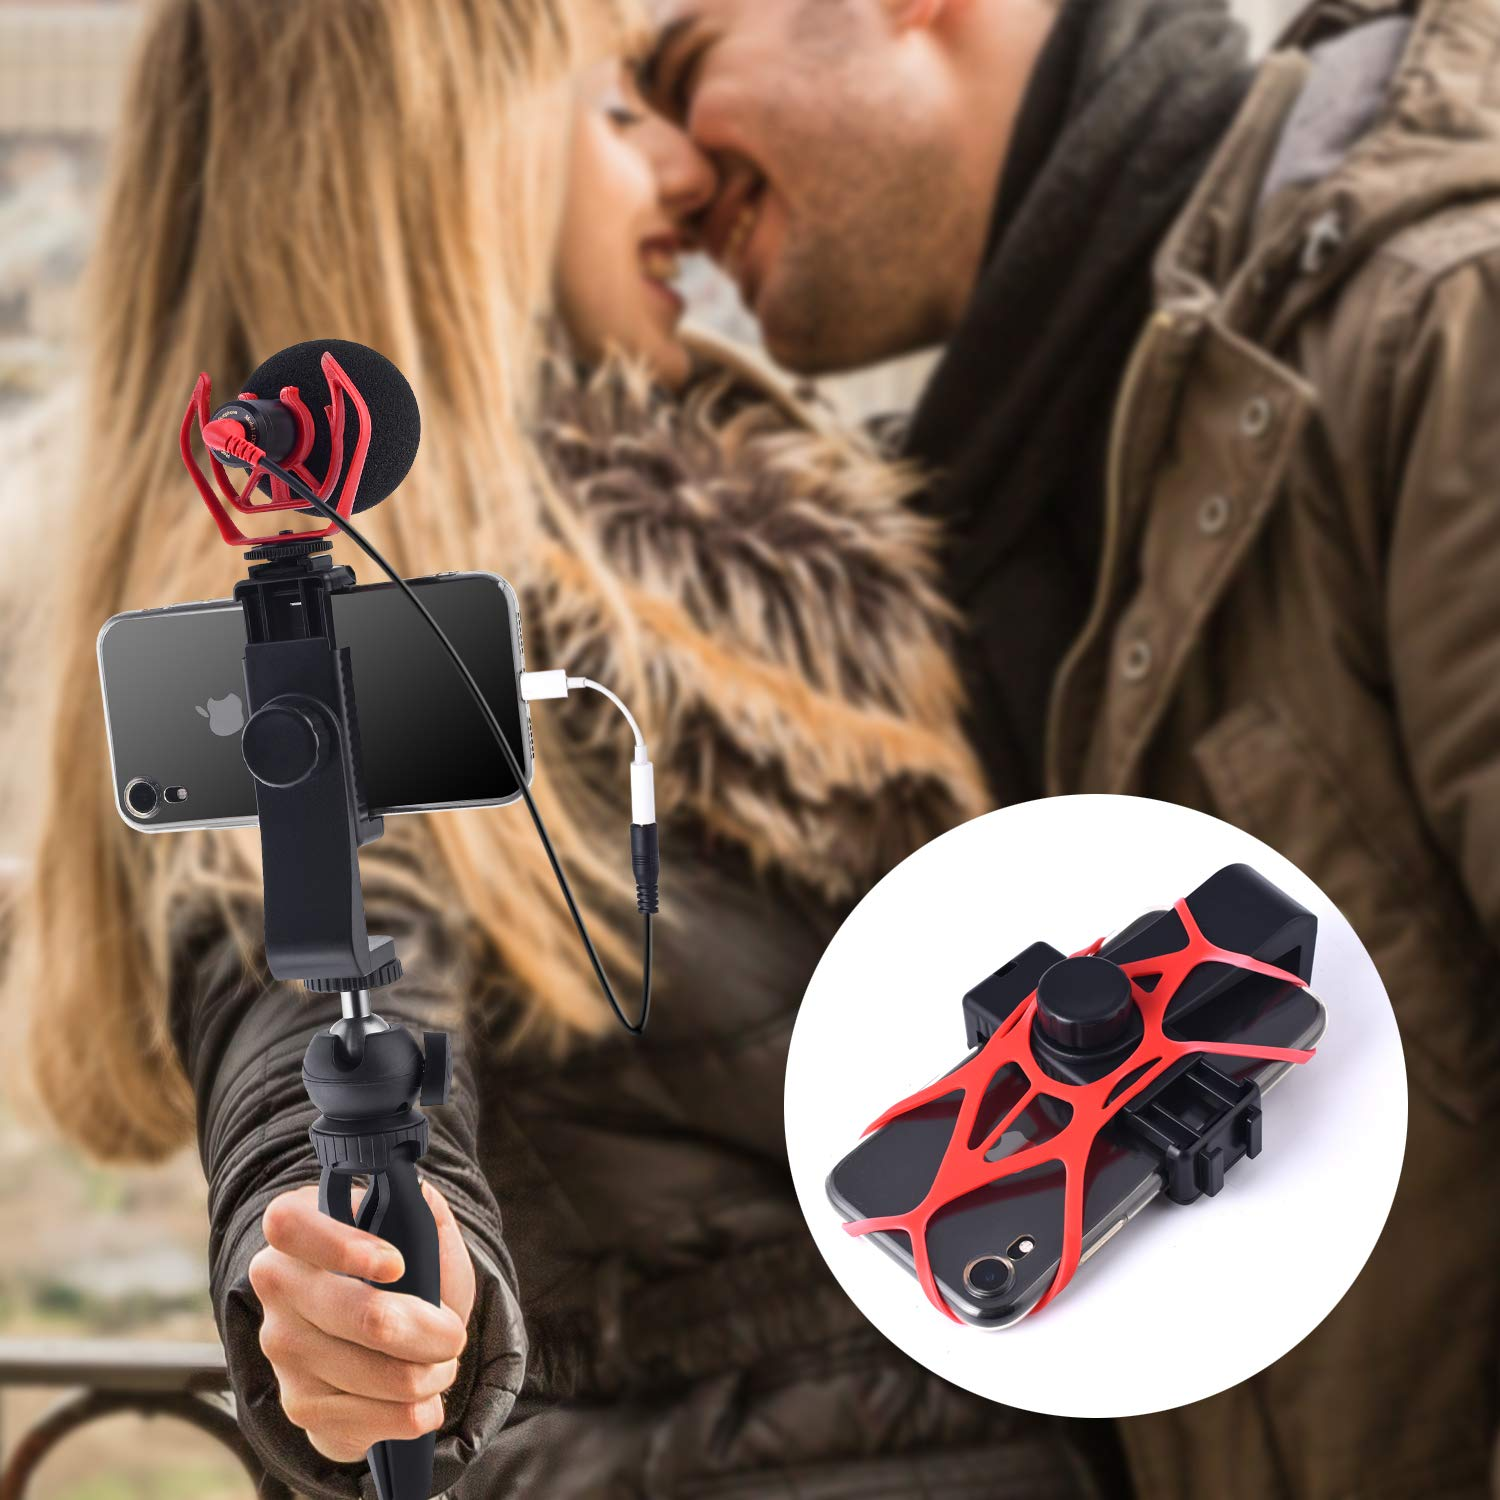 YouTube 8 Smartphone Video Microphone with Mini Tripod Videomicro and Shotgun Microphone for iPhone 5S Perfect Vlog X 6S 6 iPhone Camera Video Kit 7 Asmr Mic XR XS Max Samsung Google